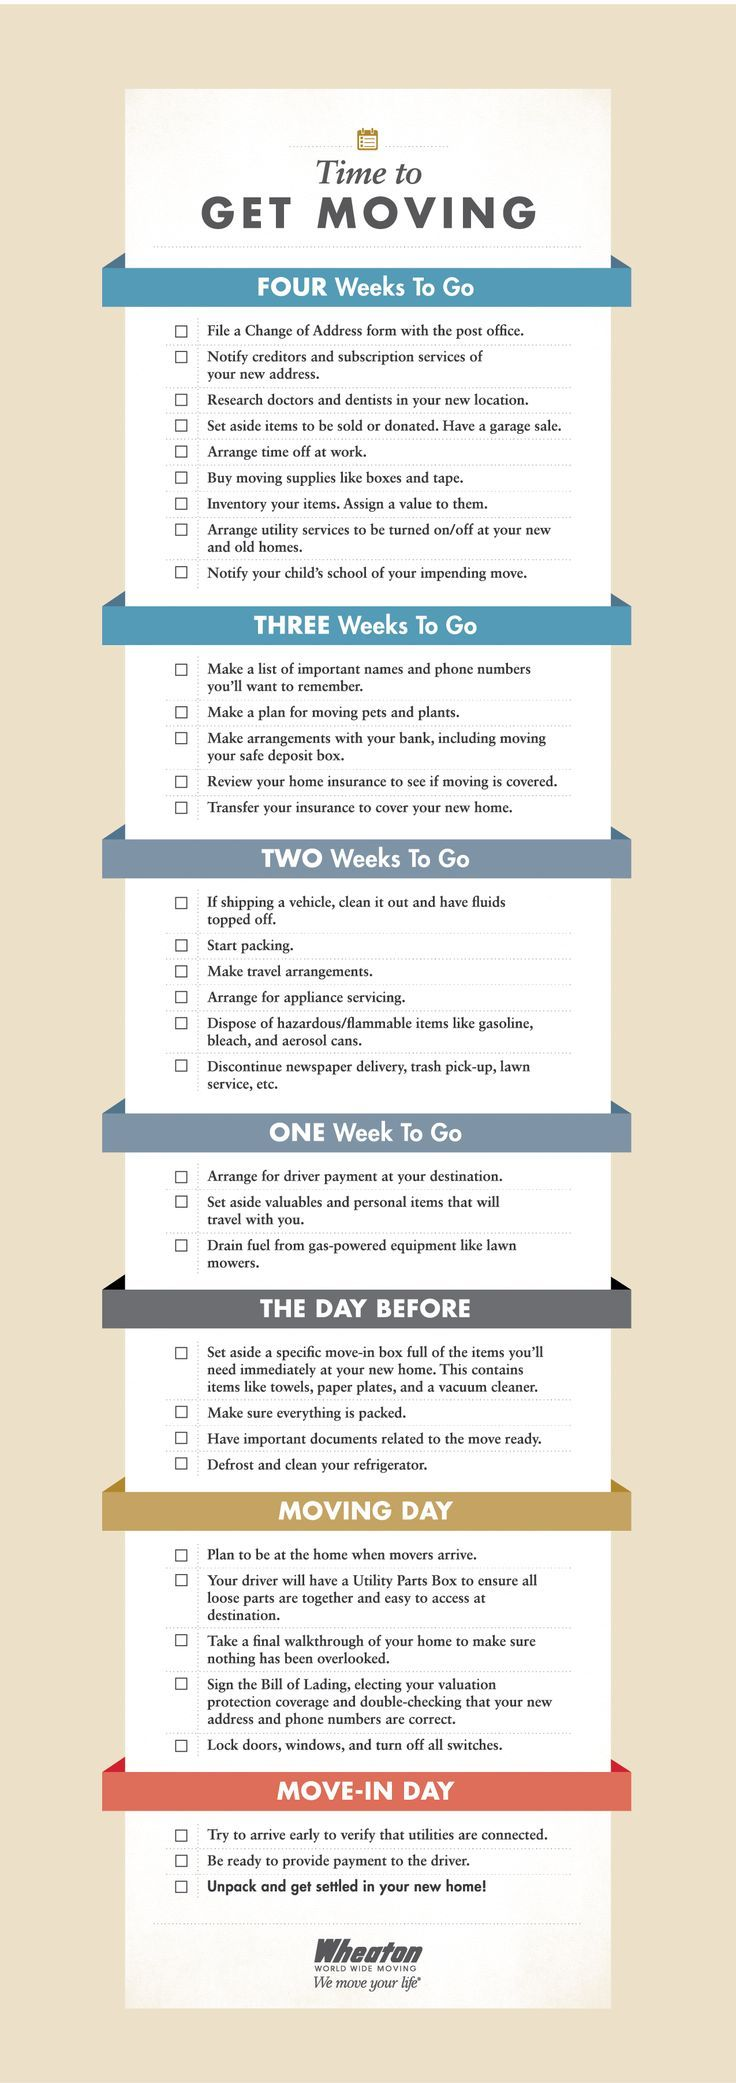 The Pinterest 100 As People Move Houses They Turn To Us For Checklists And Floor Plans Housemoving Housemoving Moving Tips Moving House Moving Checklist